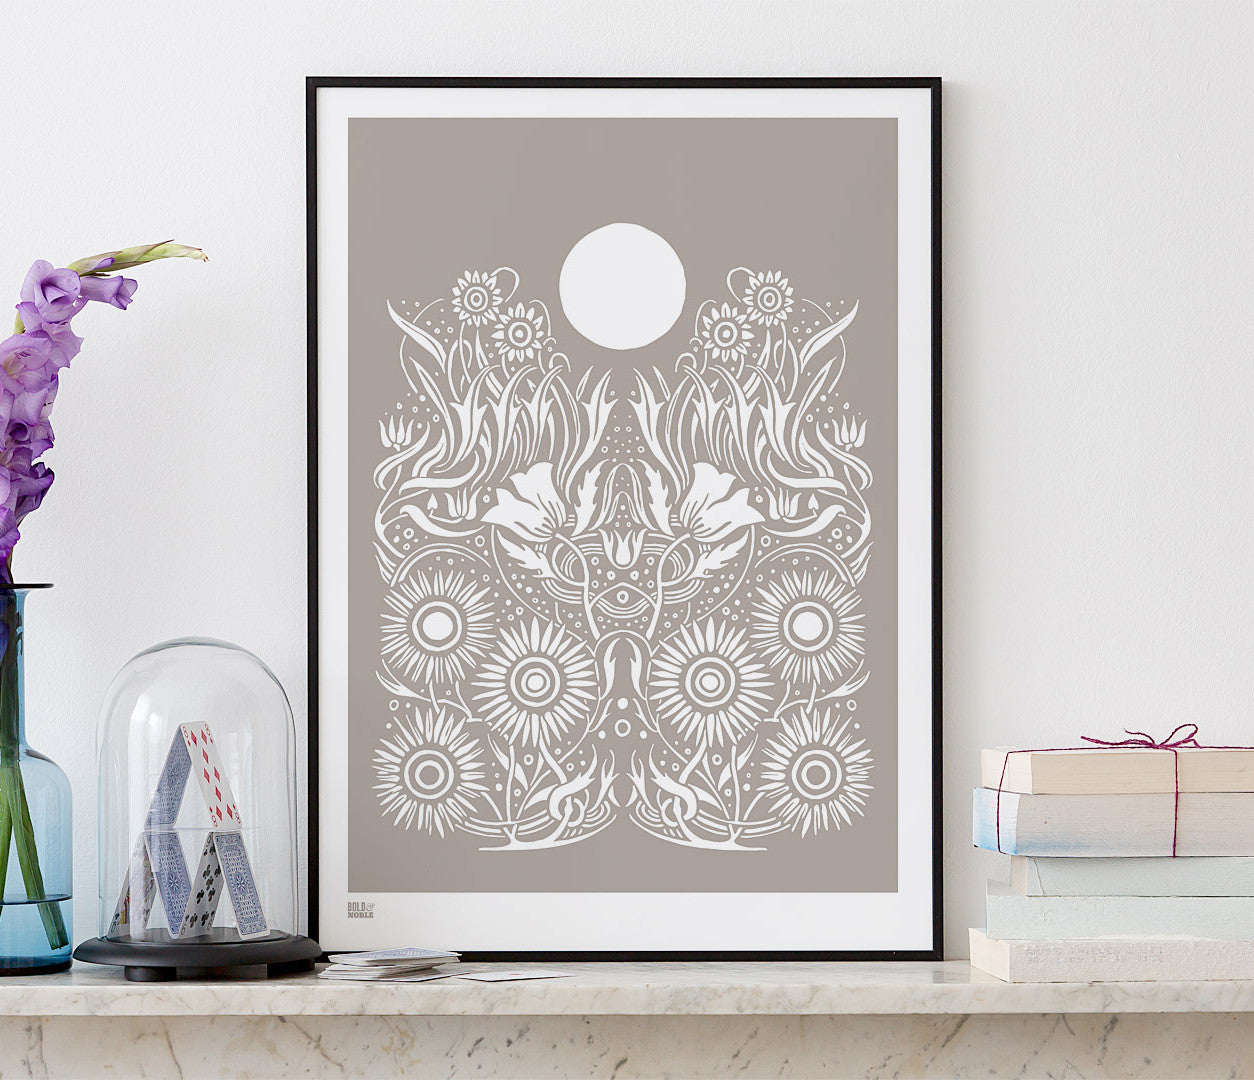 'Moonlight' Art Print in Warm Stone